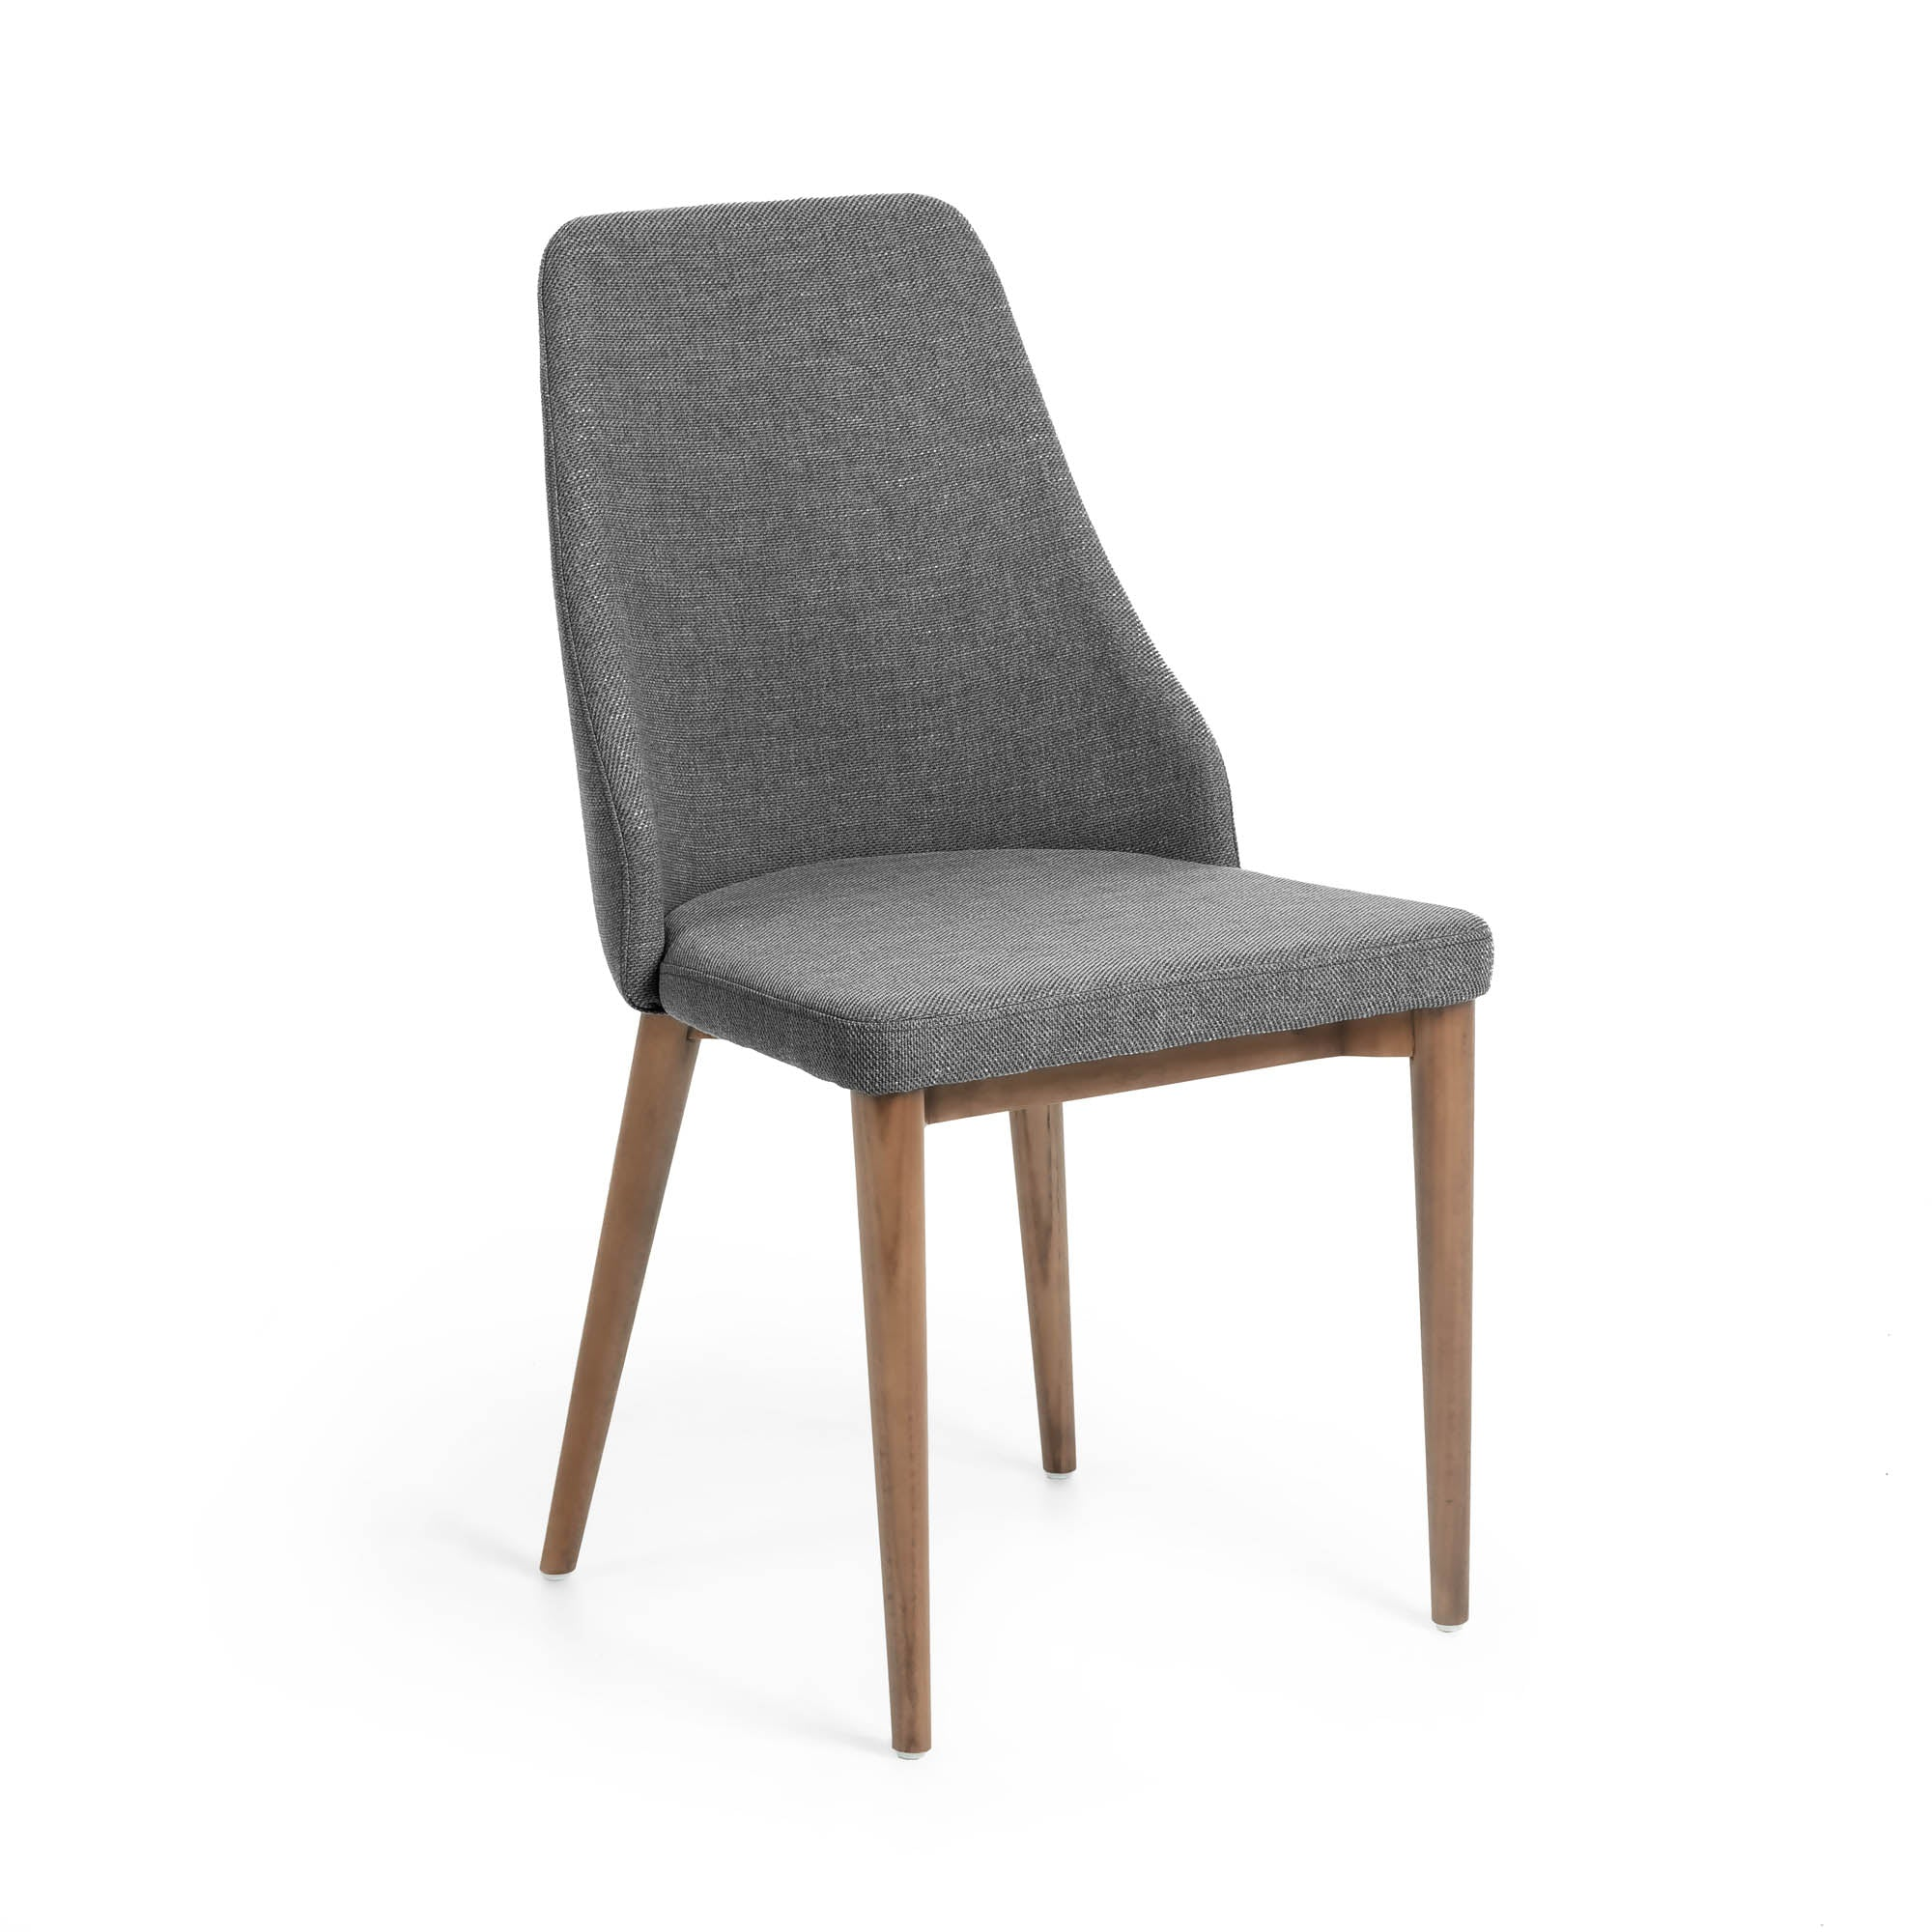 Roxette Chair Dark Grey Fabric with Walnut Leg